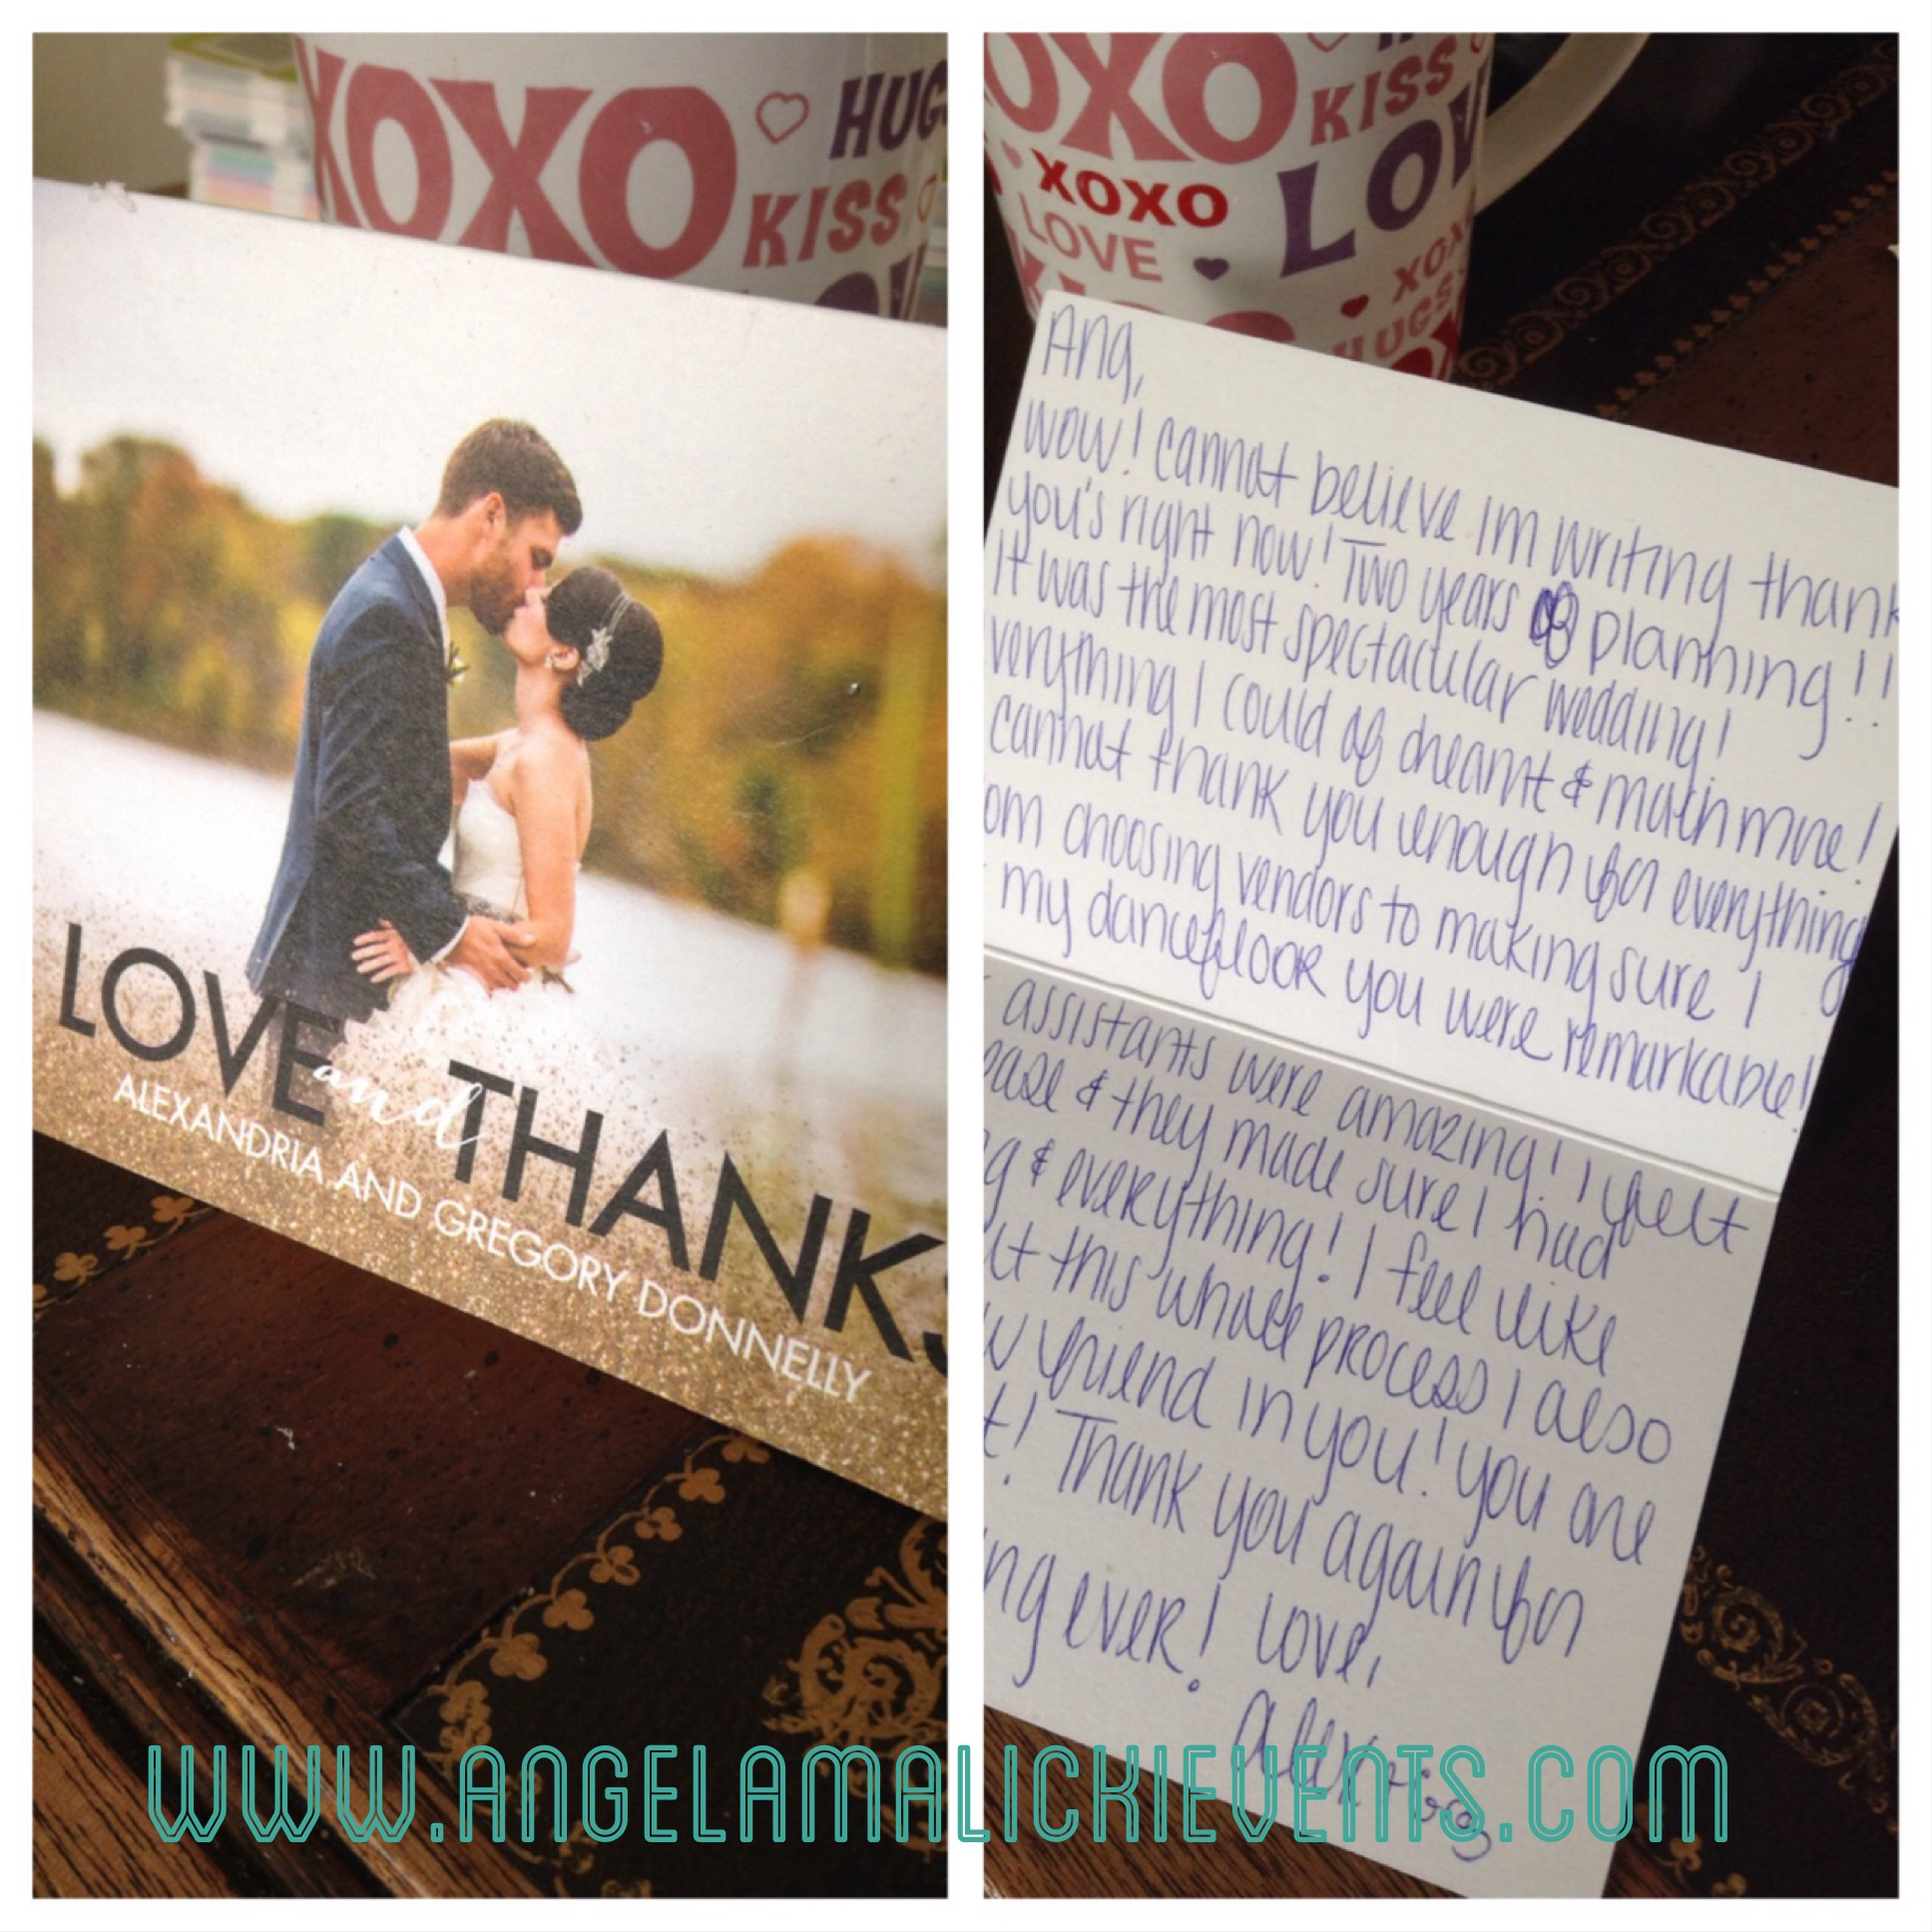 Thank you Alex and Greg for the kind words - had a blast at your wedding at the Lakehouse Inn